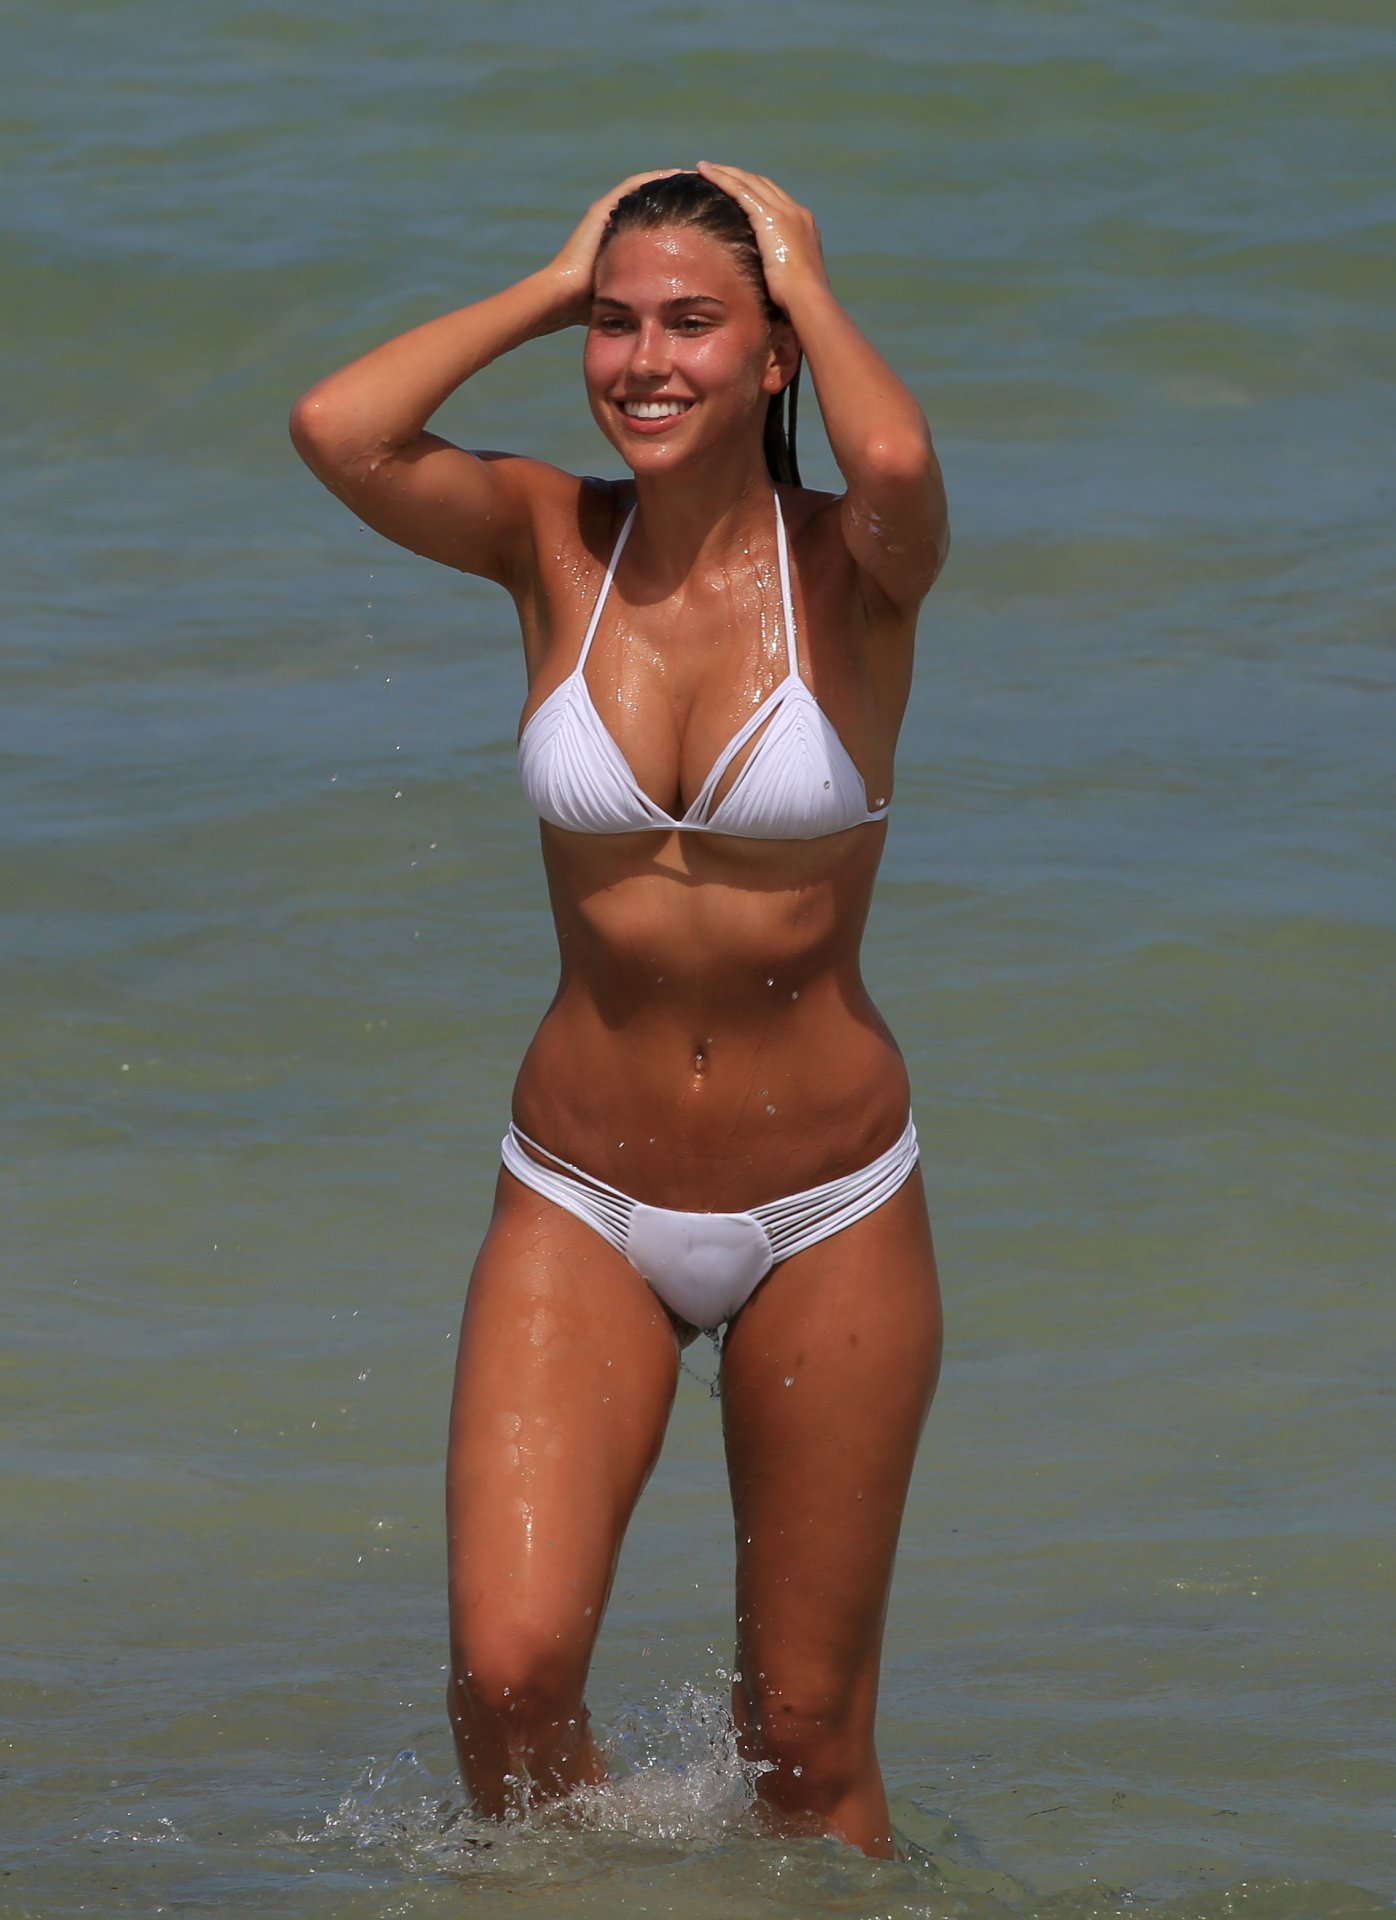 Kara Del Toro in Bikini Hot Photos  Pic 12 of 35